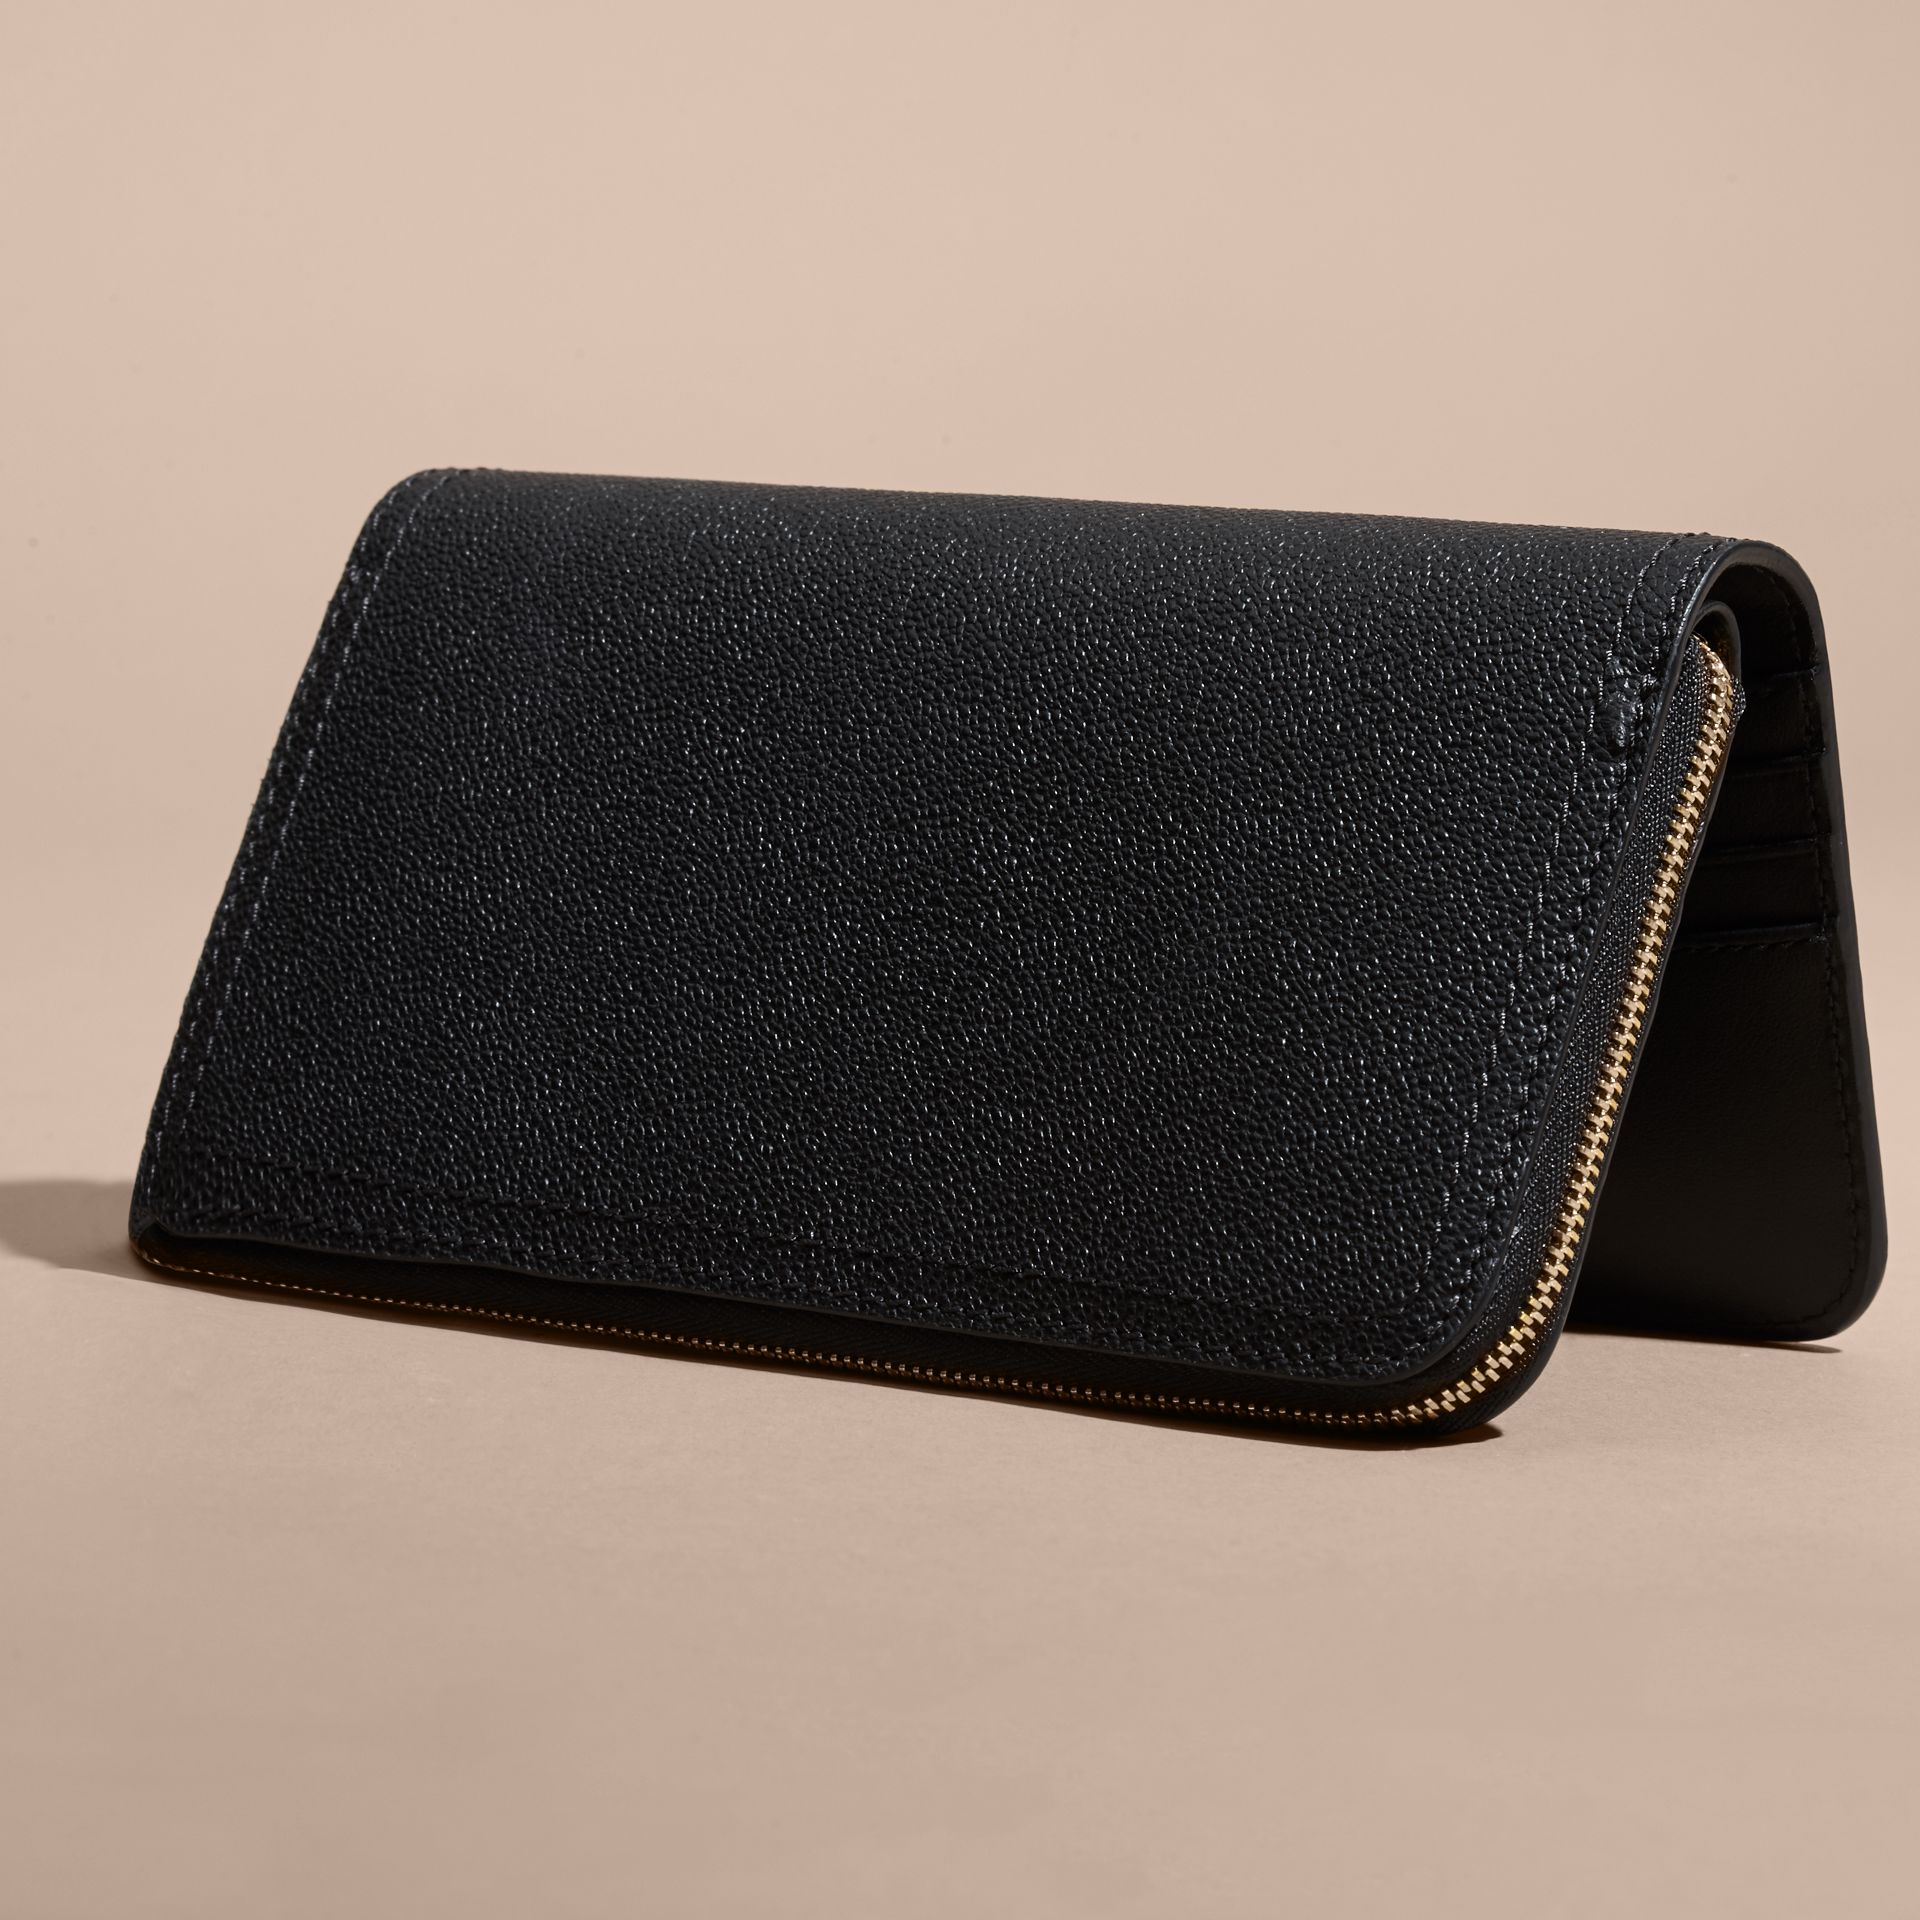 Grainy Leather Ziparound Wallet in Black - Women | Burberry Hong Kong - gallery image 3